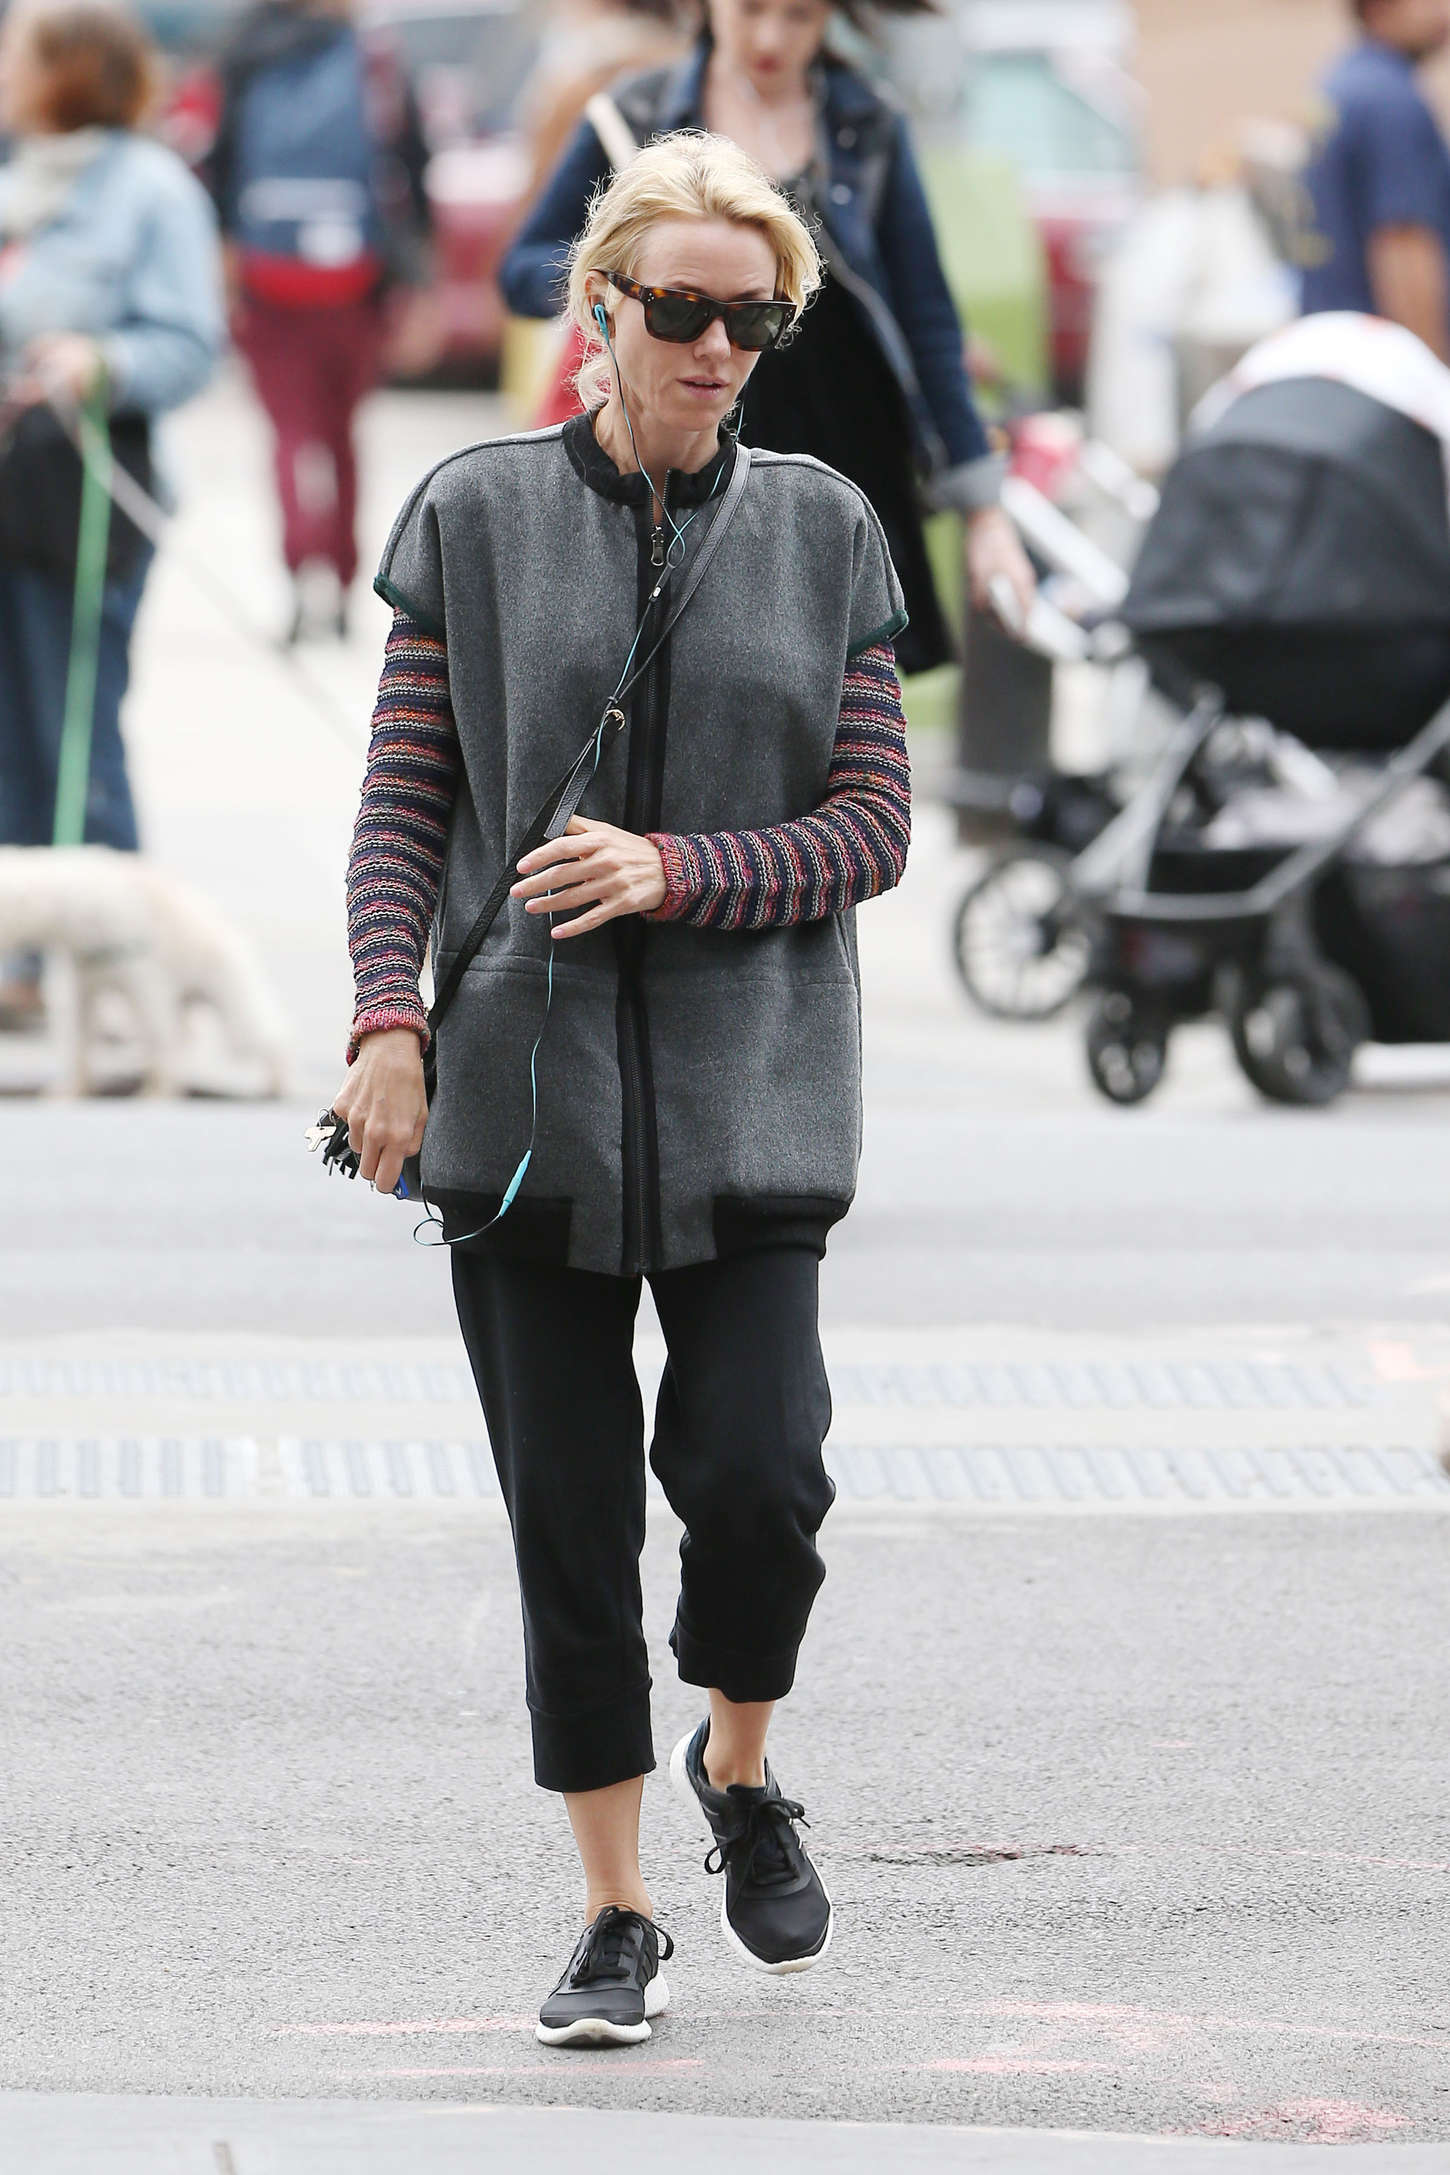 naomi watts street style out in nyc